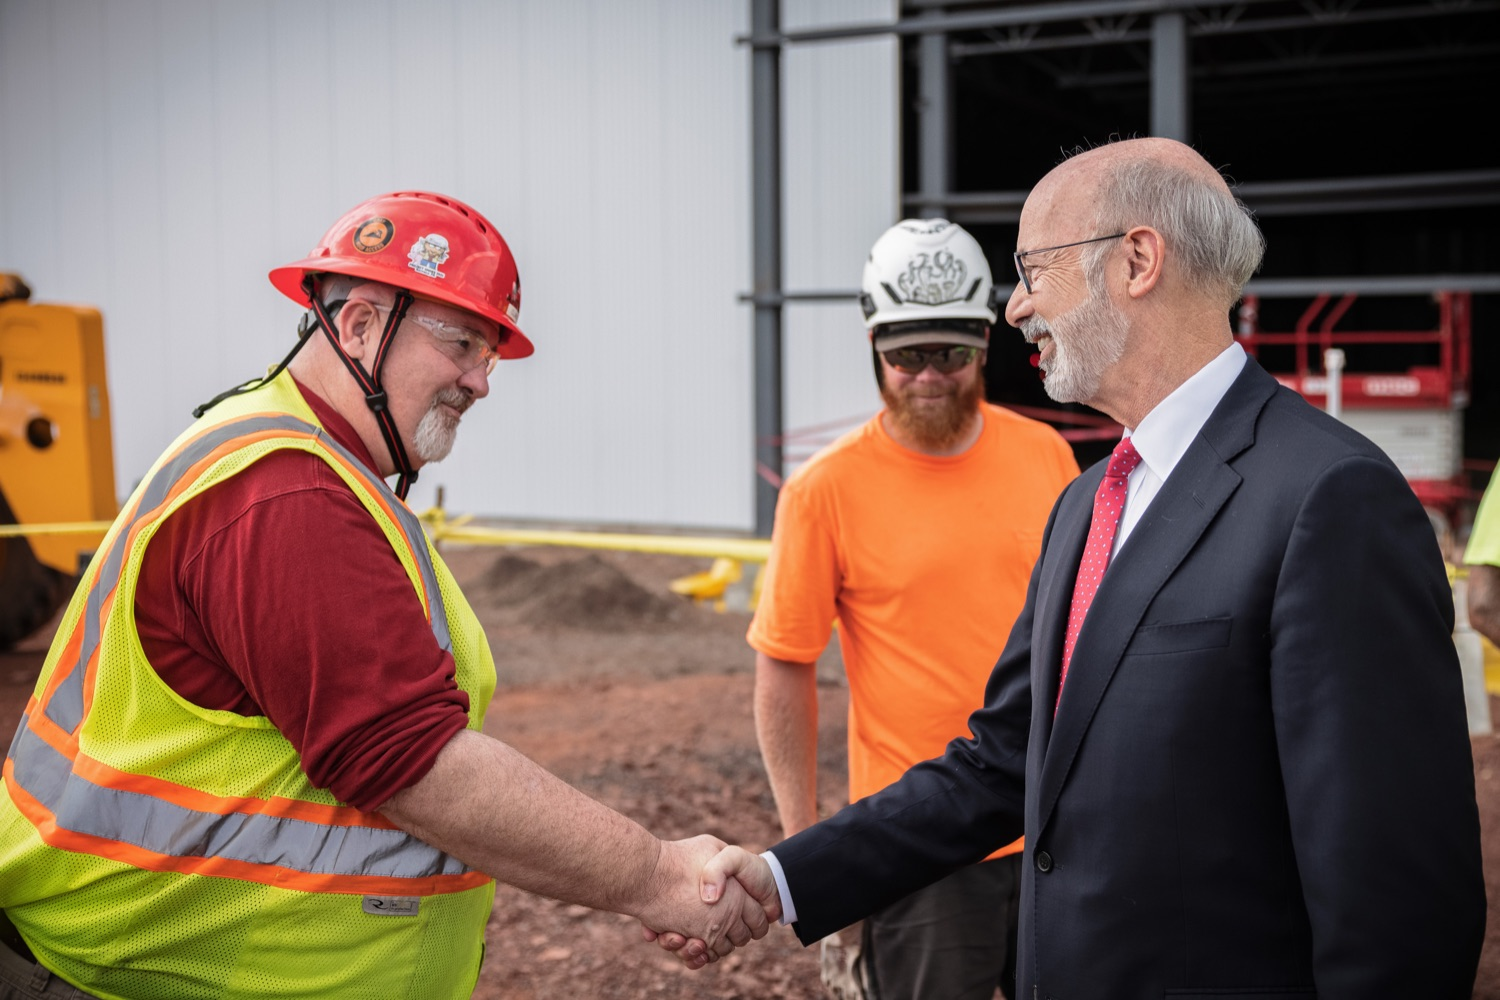 """<a href=""""https://filesource.wostreaming.net/commonwealthofpa/photo/20126_gov_economicDevelopment_dz_011.jpg"""" target=""""_blank"""">⇣Download Photo<br></a>Pennsylvania Governor Tom Wolf greeting construction workers as he tours the site.  Governor Tom Wolf joined Clemens Food Group leaders, Agriculture Secretary Russell Redding, Sen. Maria Collett, Rep. Steve Malagari and members of the Governors Action Team today to tour the construction of the companys new facility in Montgomery County. The Wolf Administration supported the project which will expand the business operations and create new jobs in the region. Hatfield, PA   October 8, 2021"""